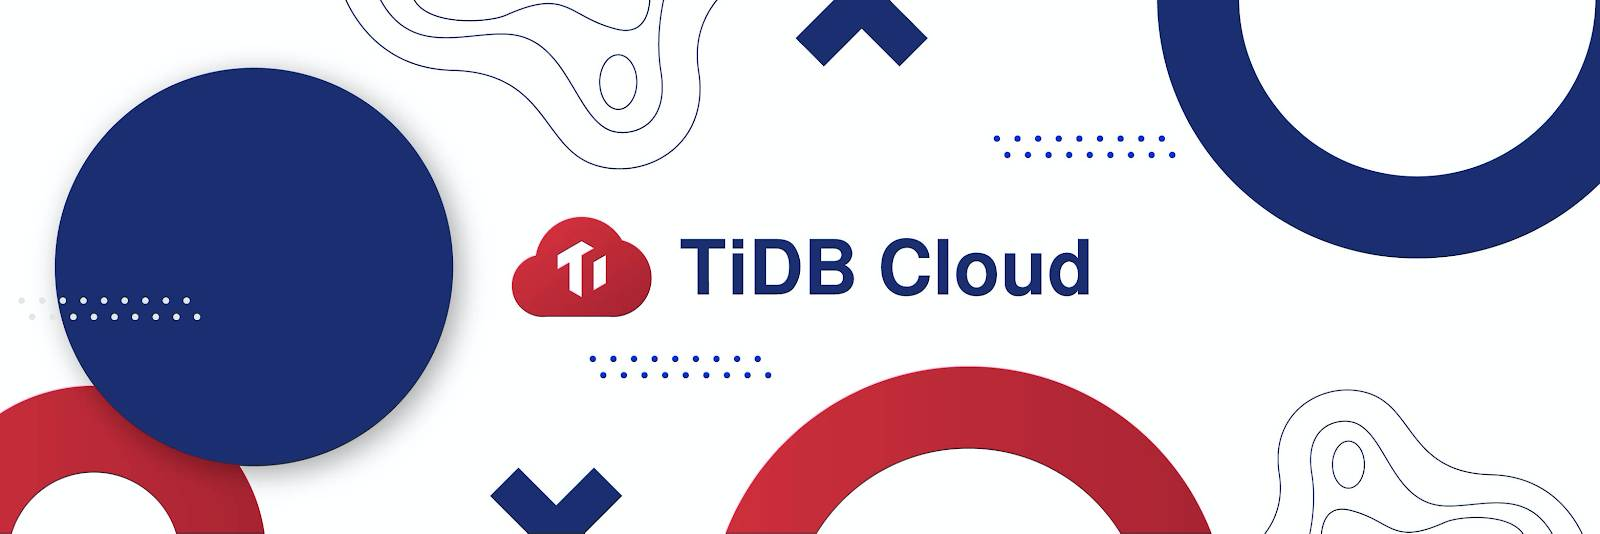 Announcing TiDB as a Service, Fully-Managed TiDB Offering